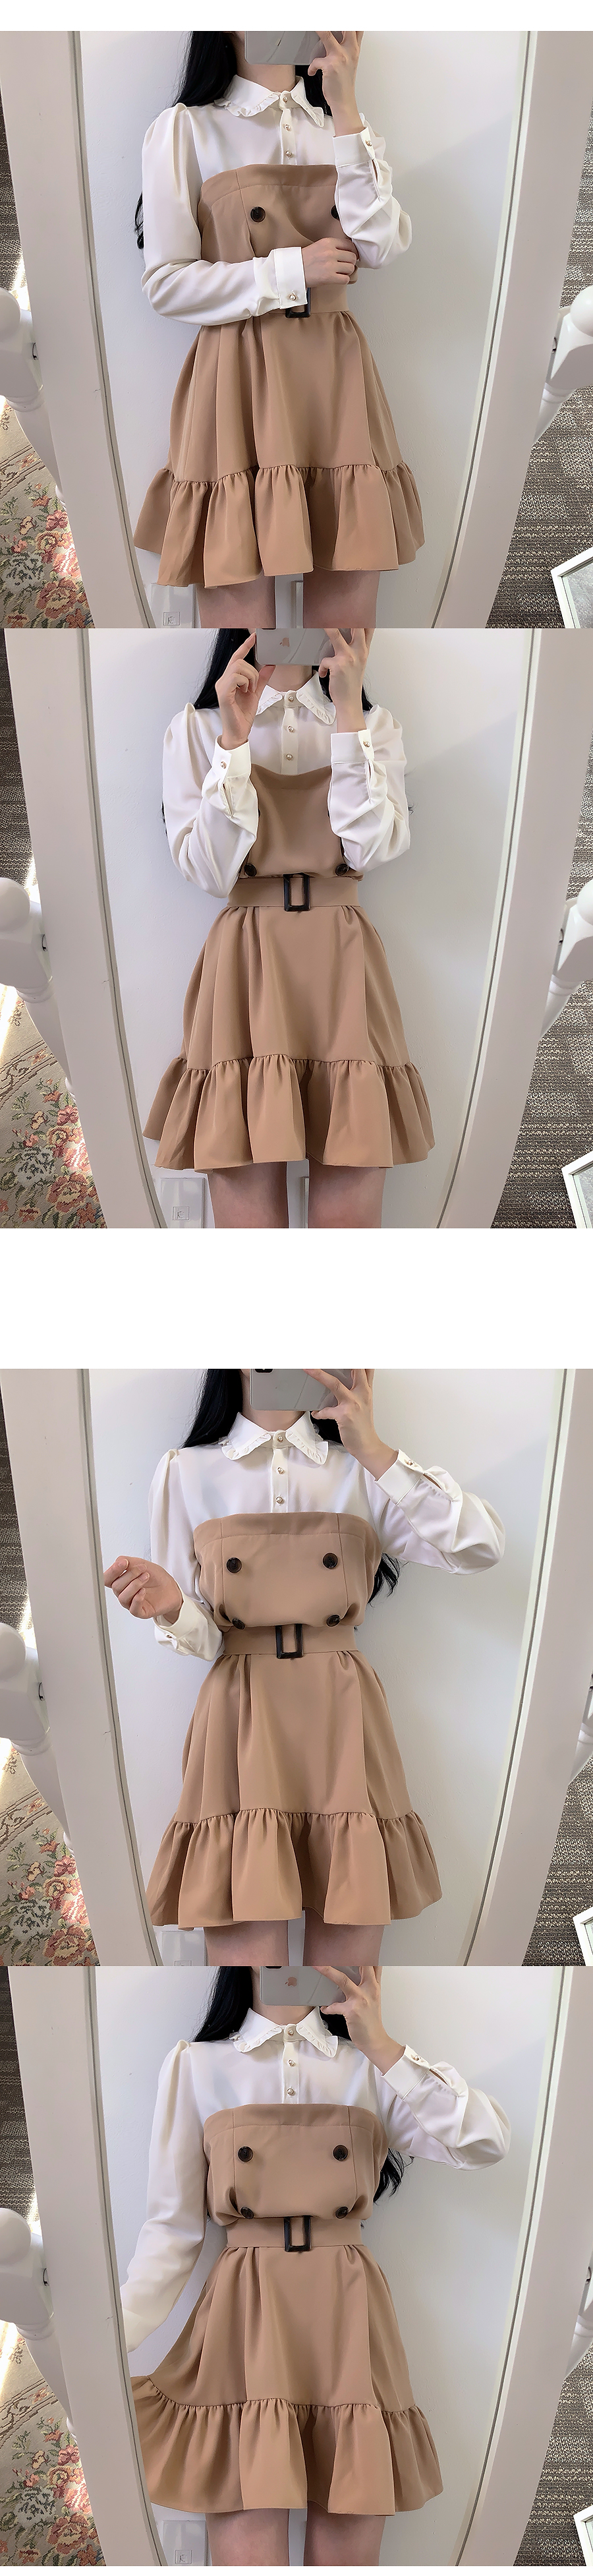 Single production ♥ Belt set Burberry color dress